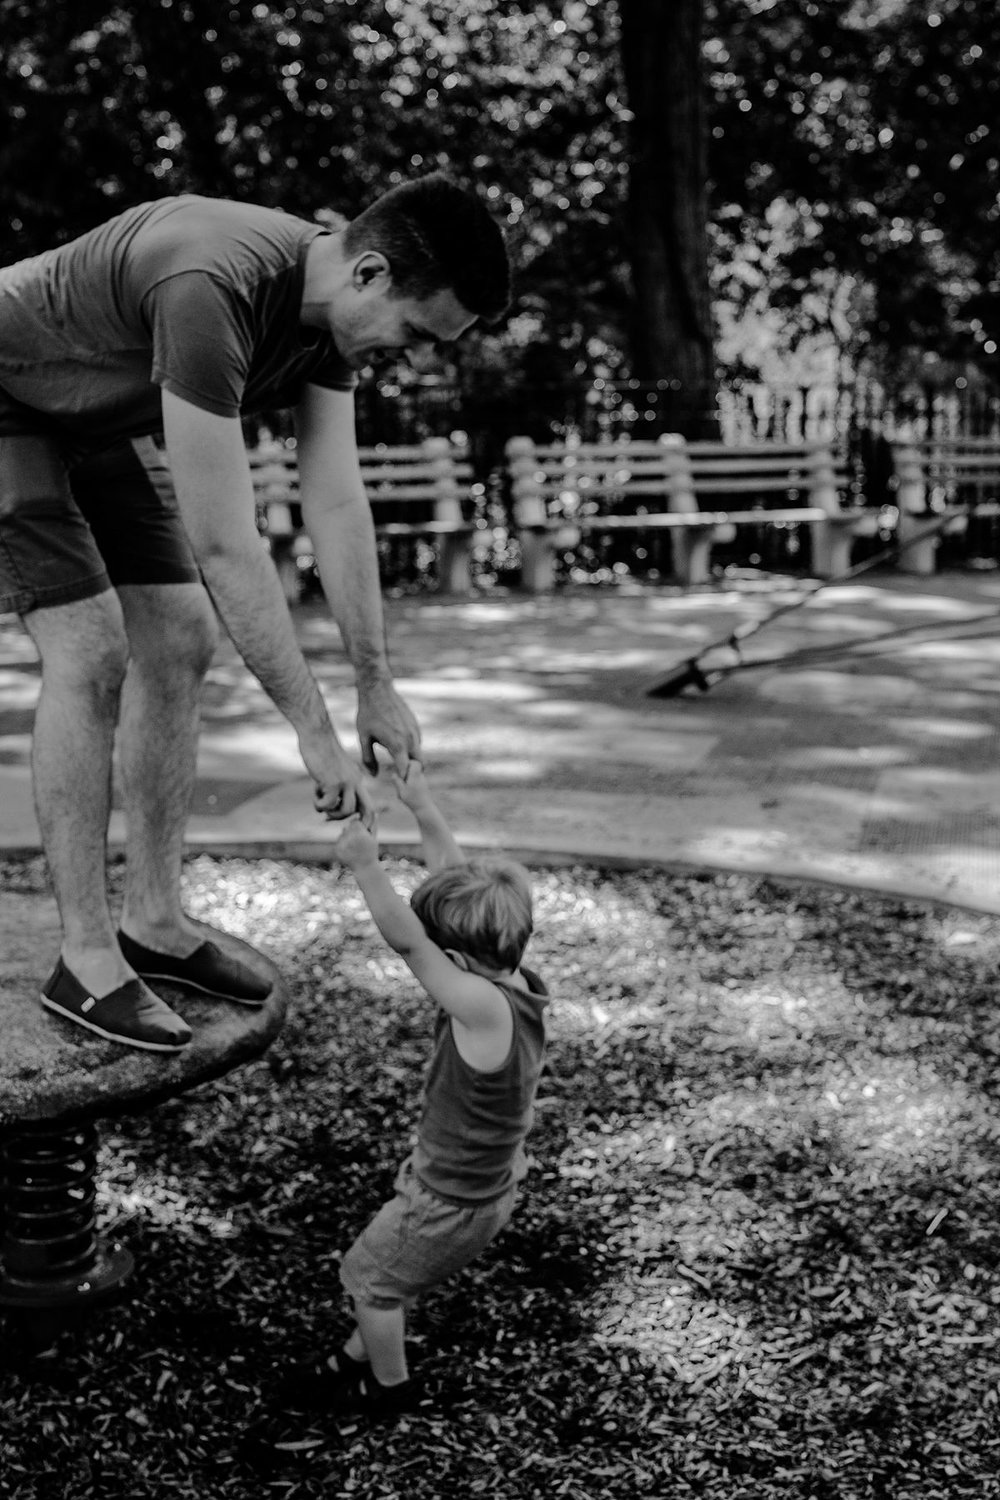 black and white image of dad and son playing together at discovery playground in nyc. image by krystil mcdowall photography